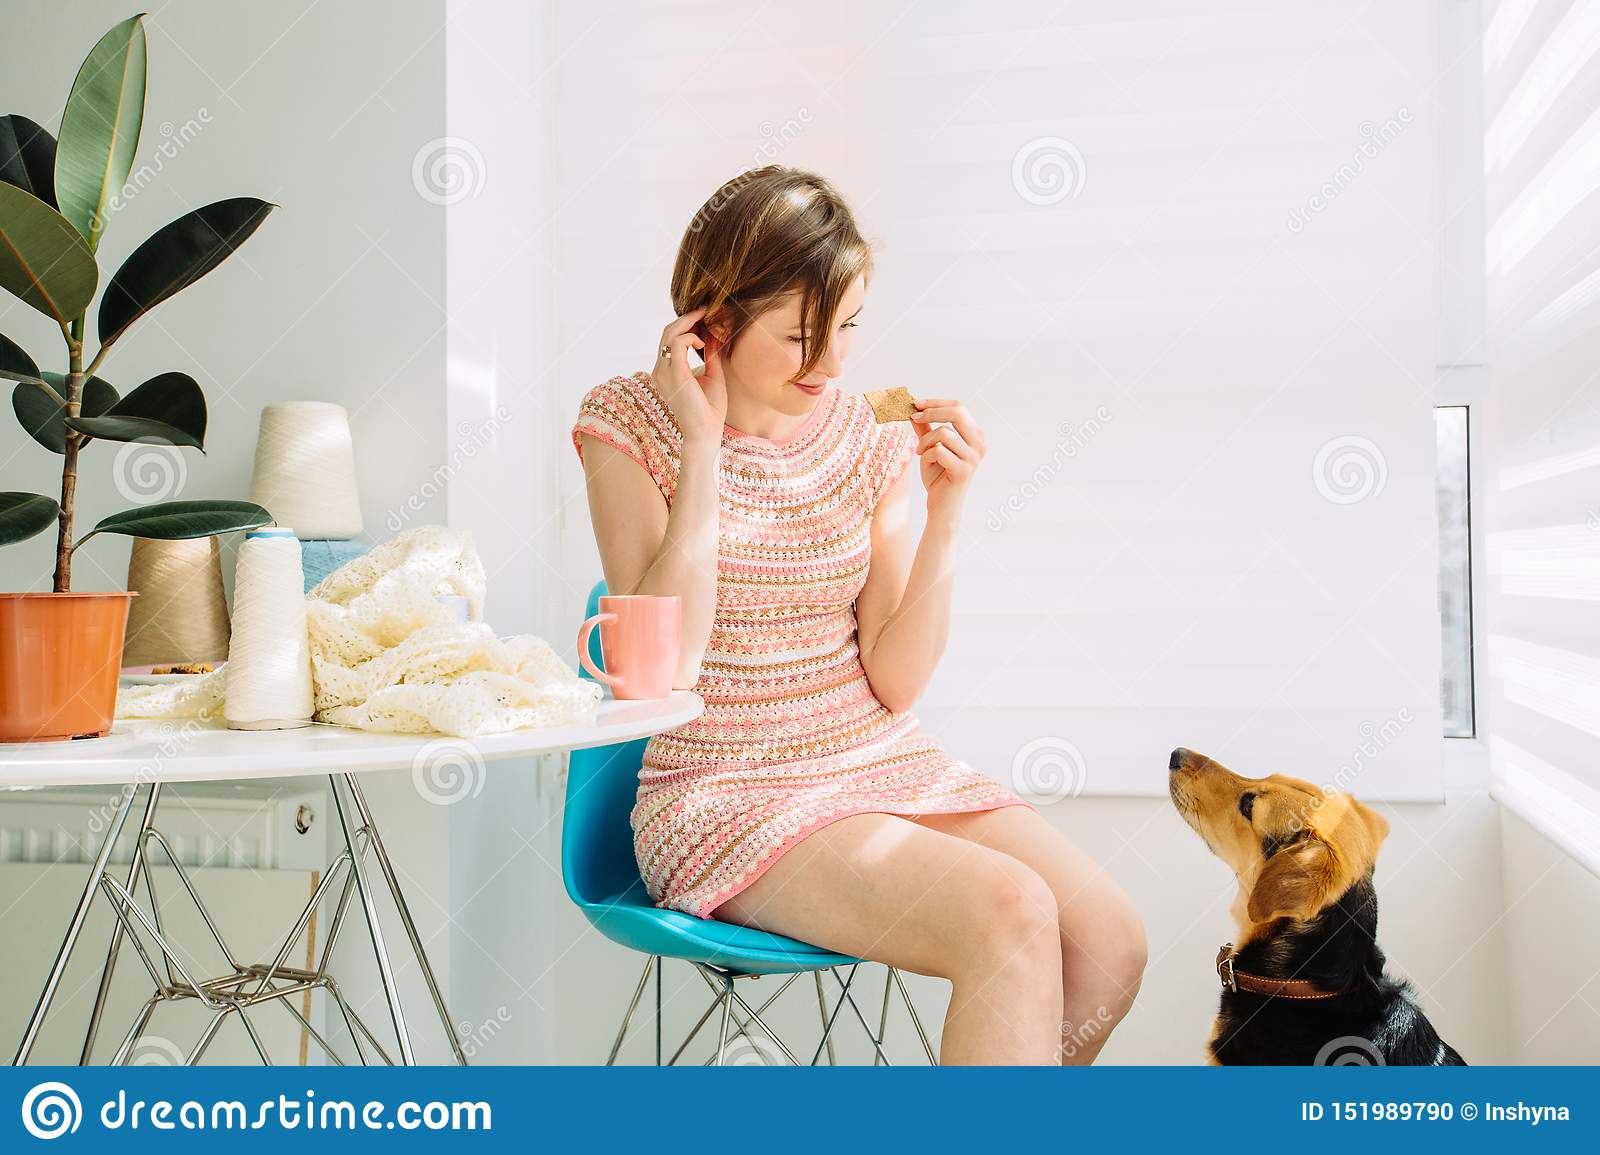 Сraftswoman relaxing with coffee cup, eating biscuit, talking with a dog, knitting in cozy workplace at home interior. Female